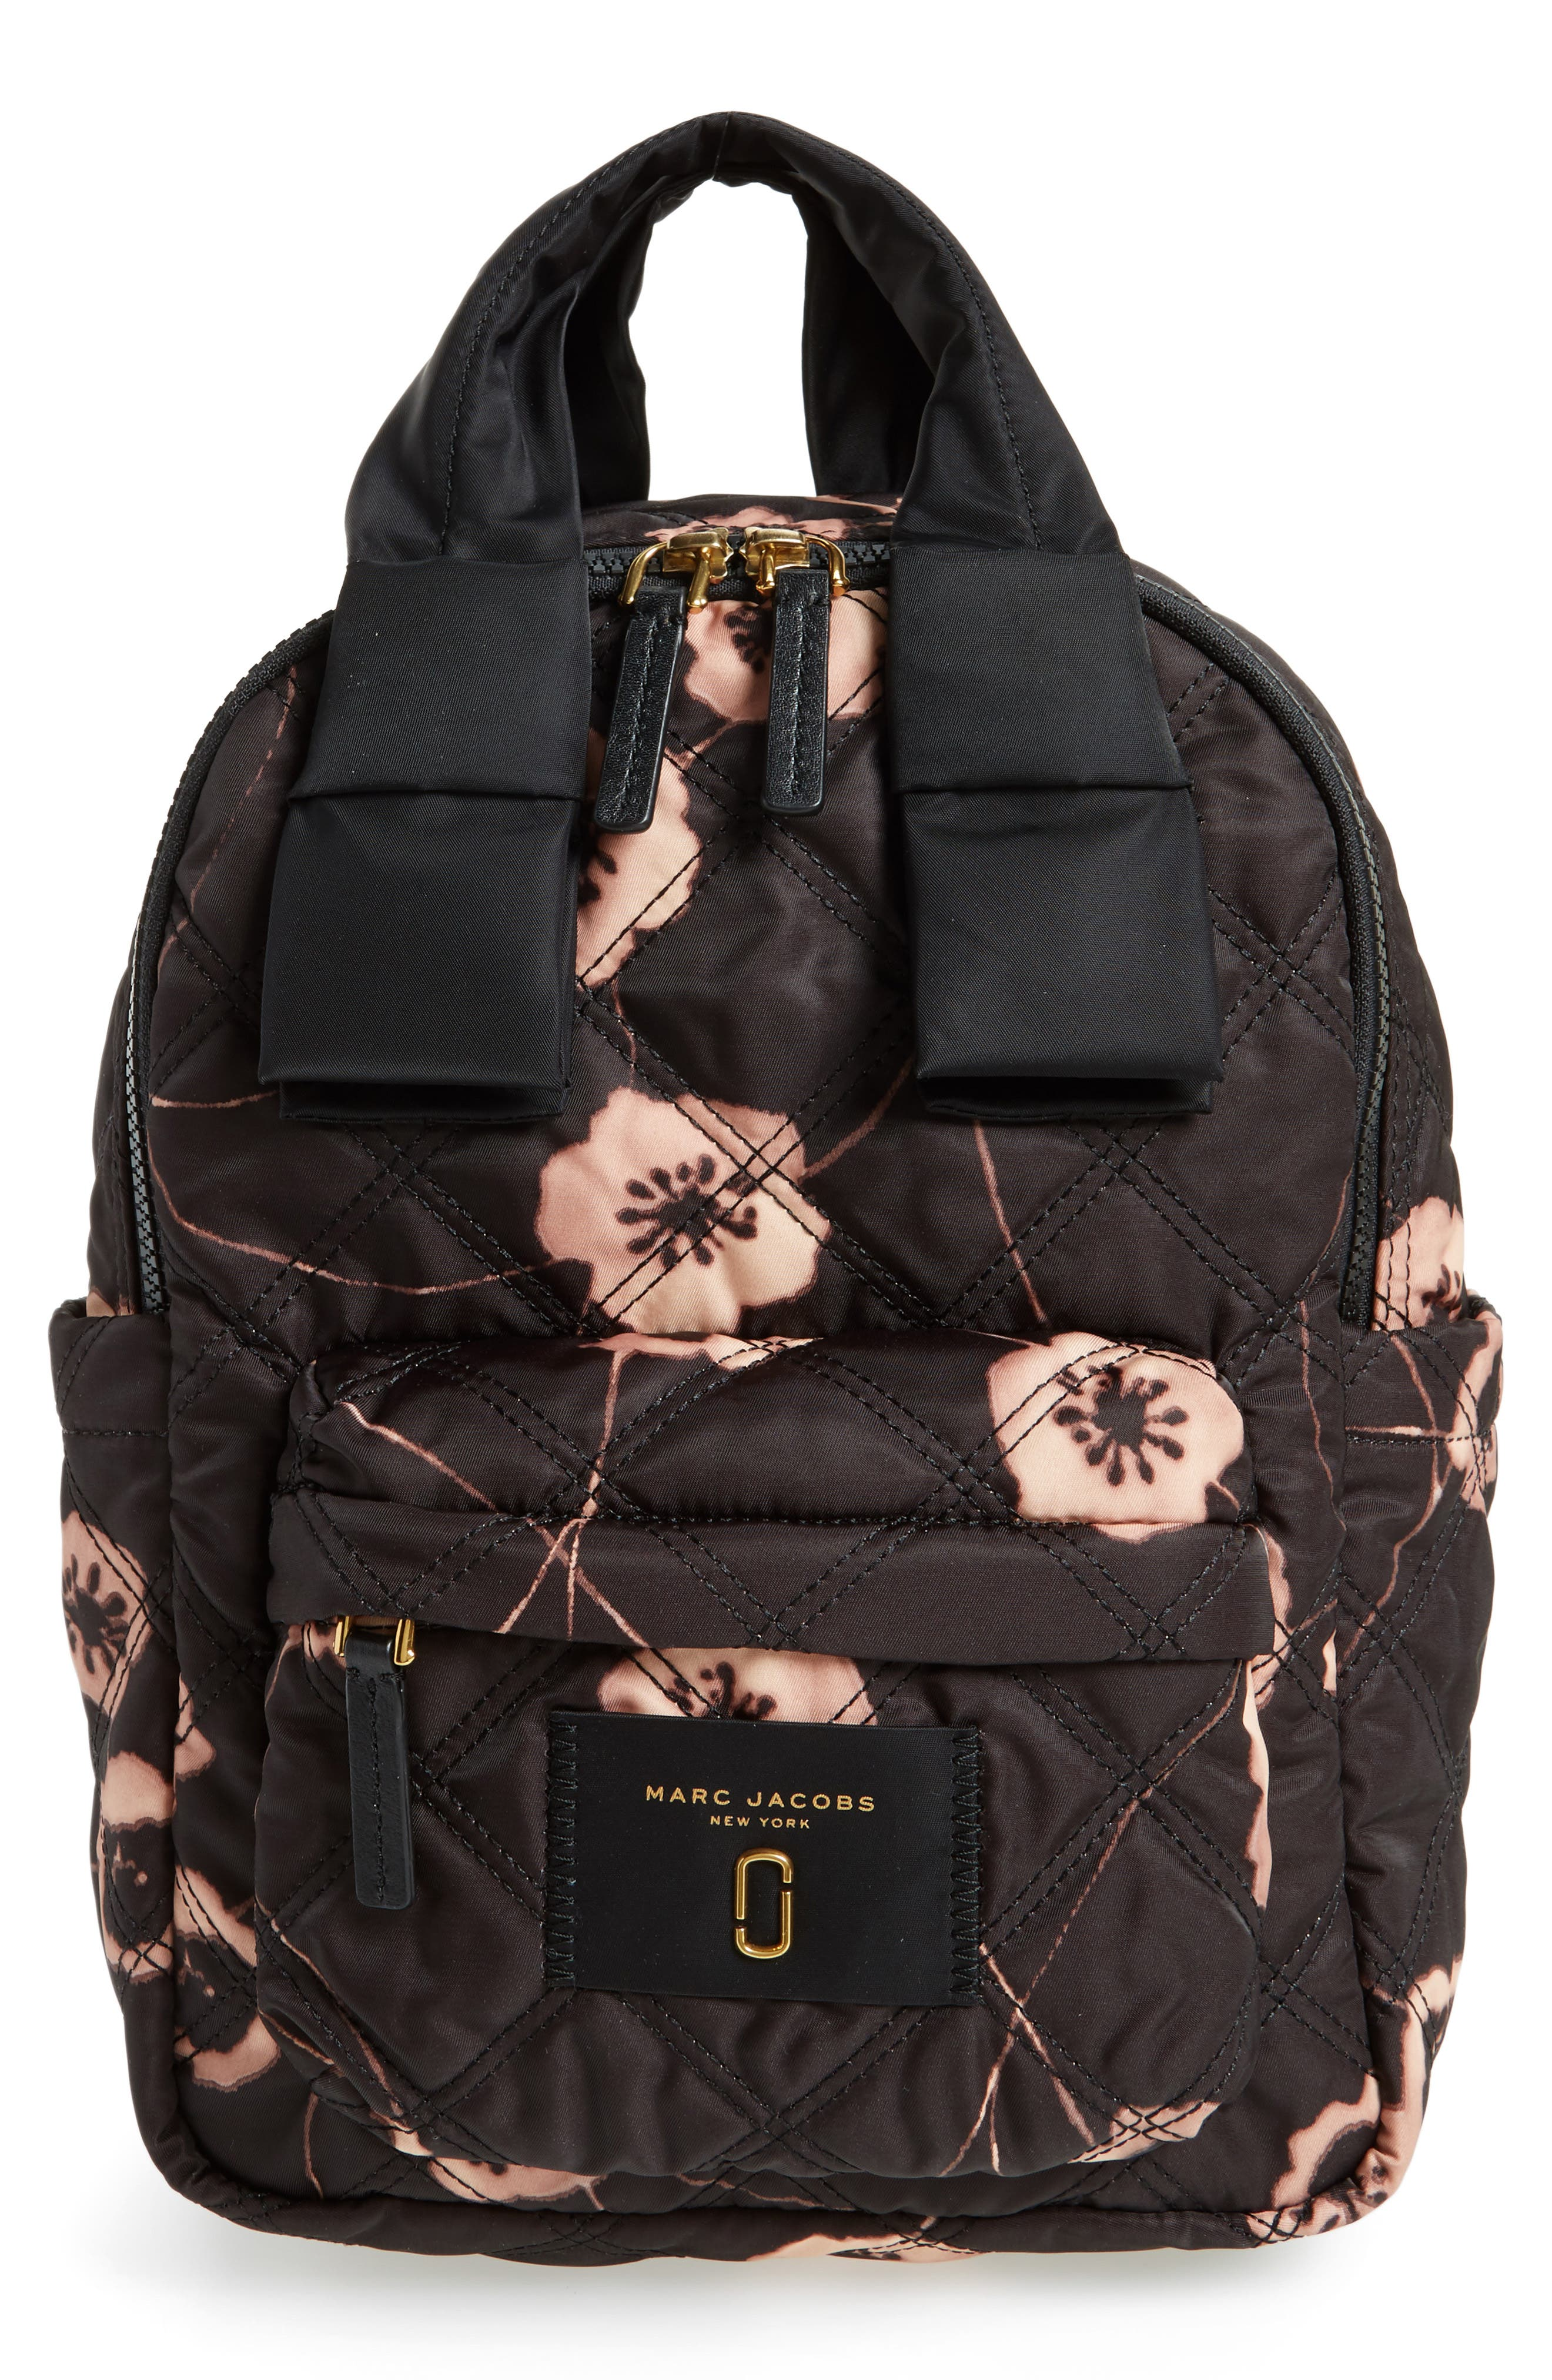 Main Image - MARC JACOBS Small Violet Vines Knot Backpack